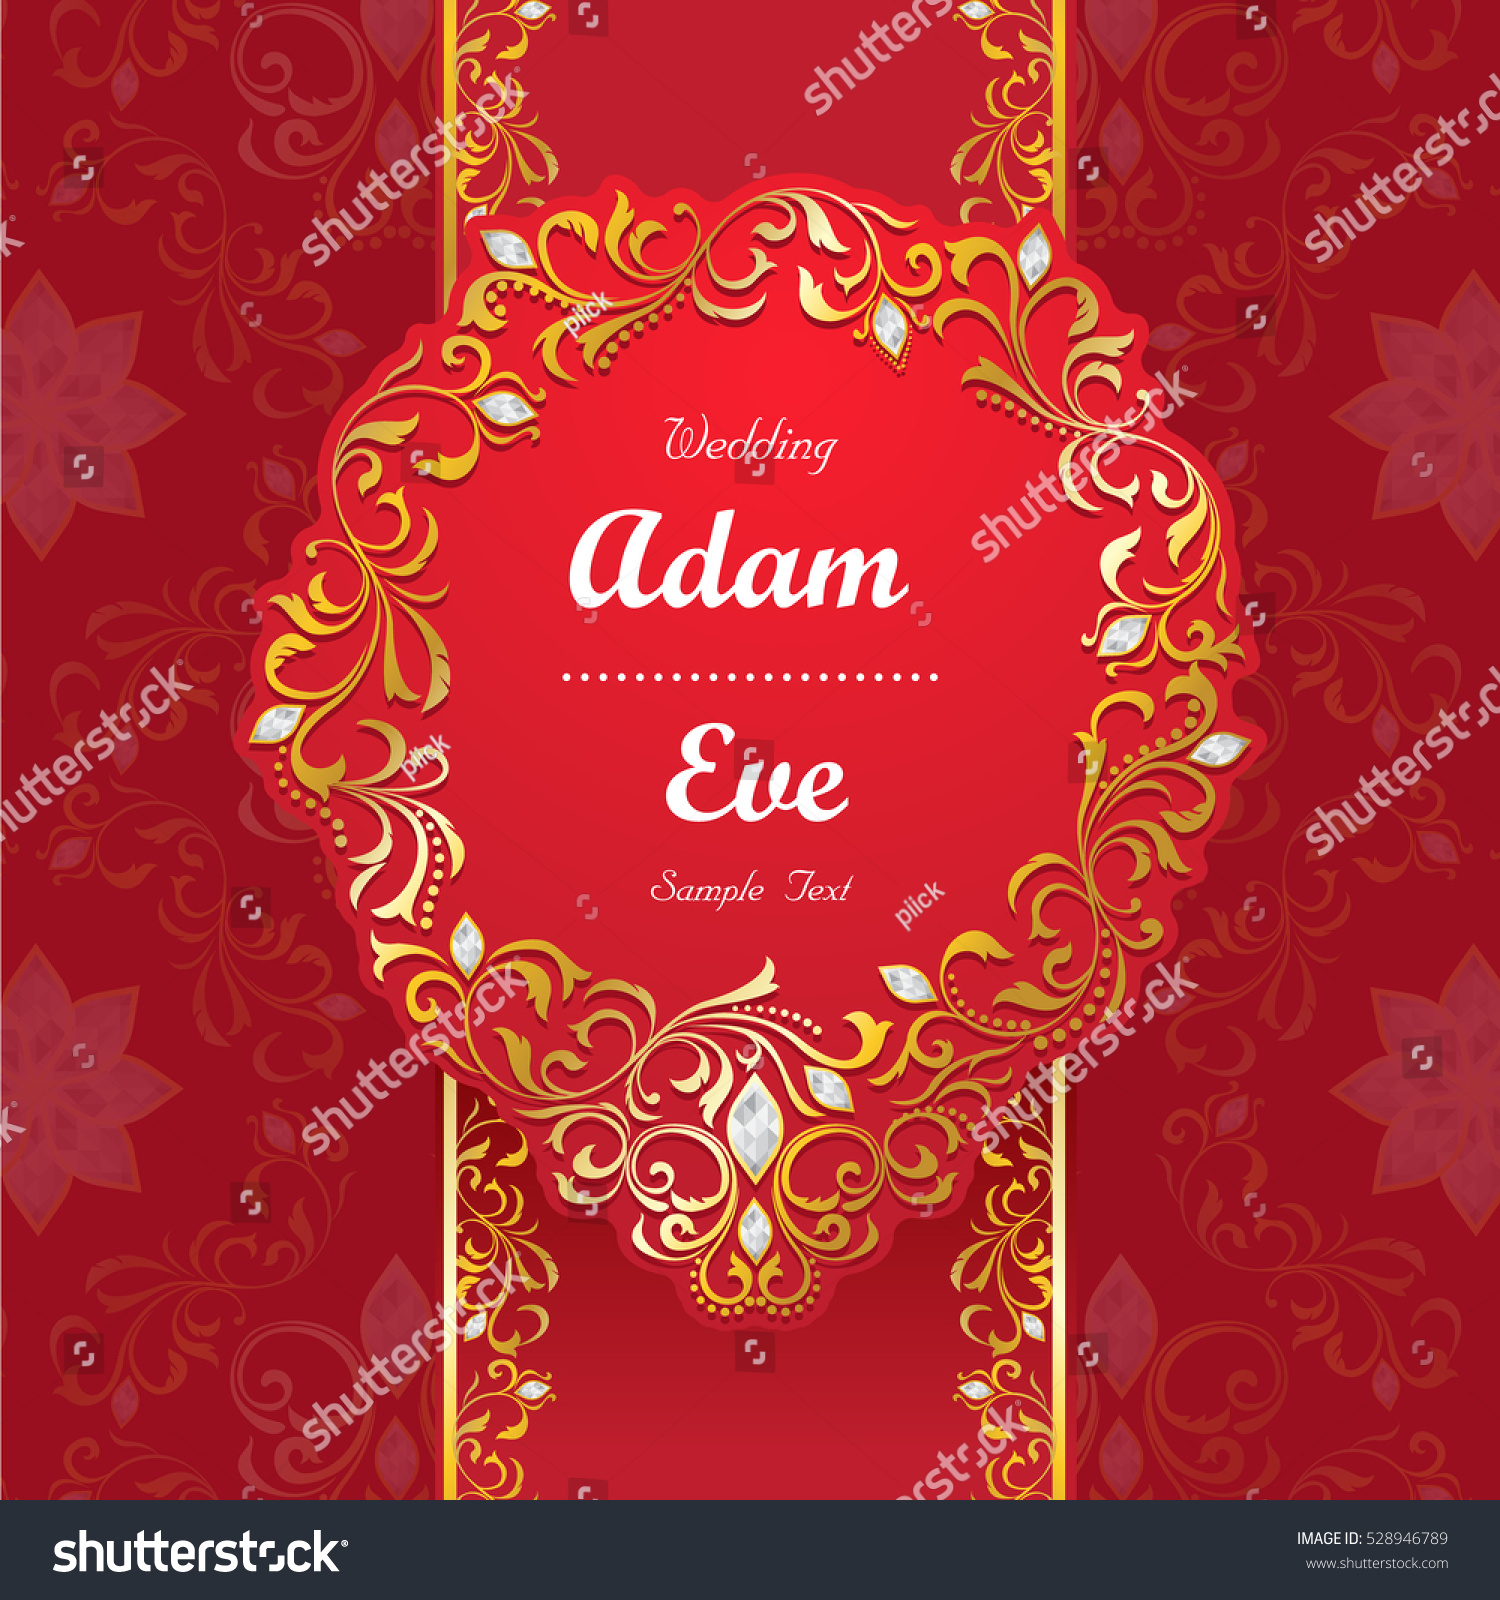 Wedding Invitation Card Vintage Ornate Card Stock Vector (Royalty ...